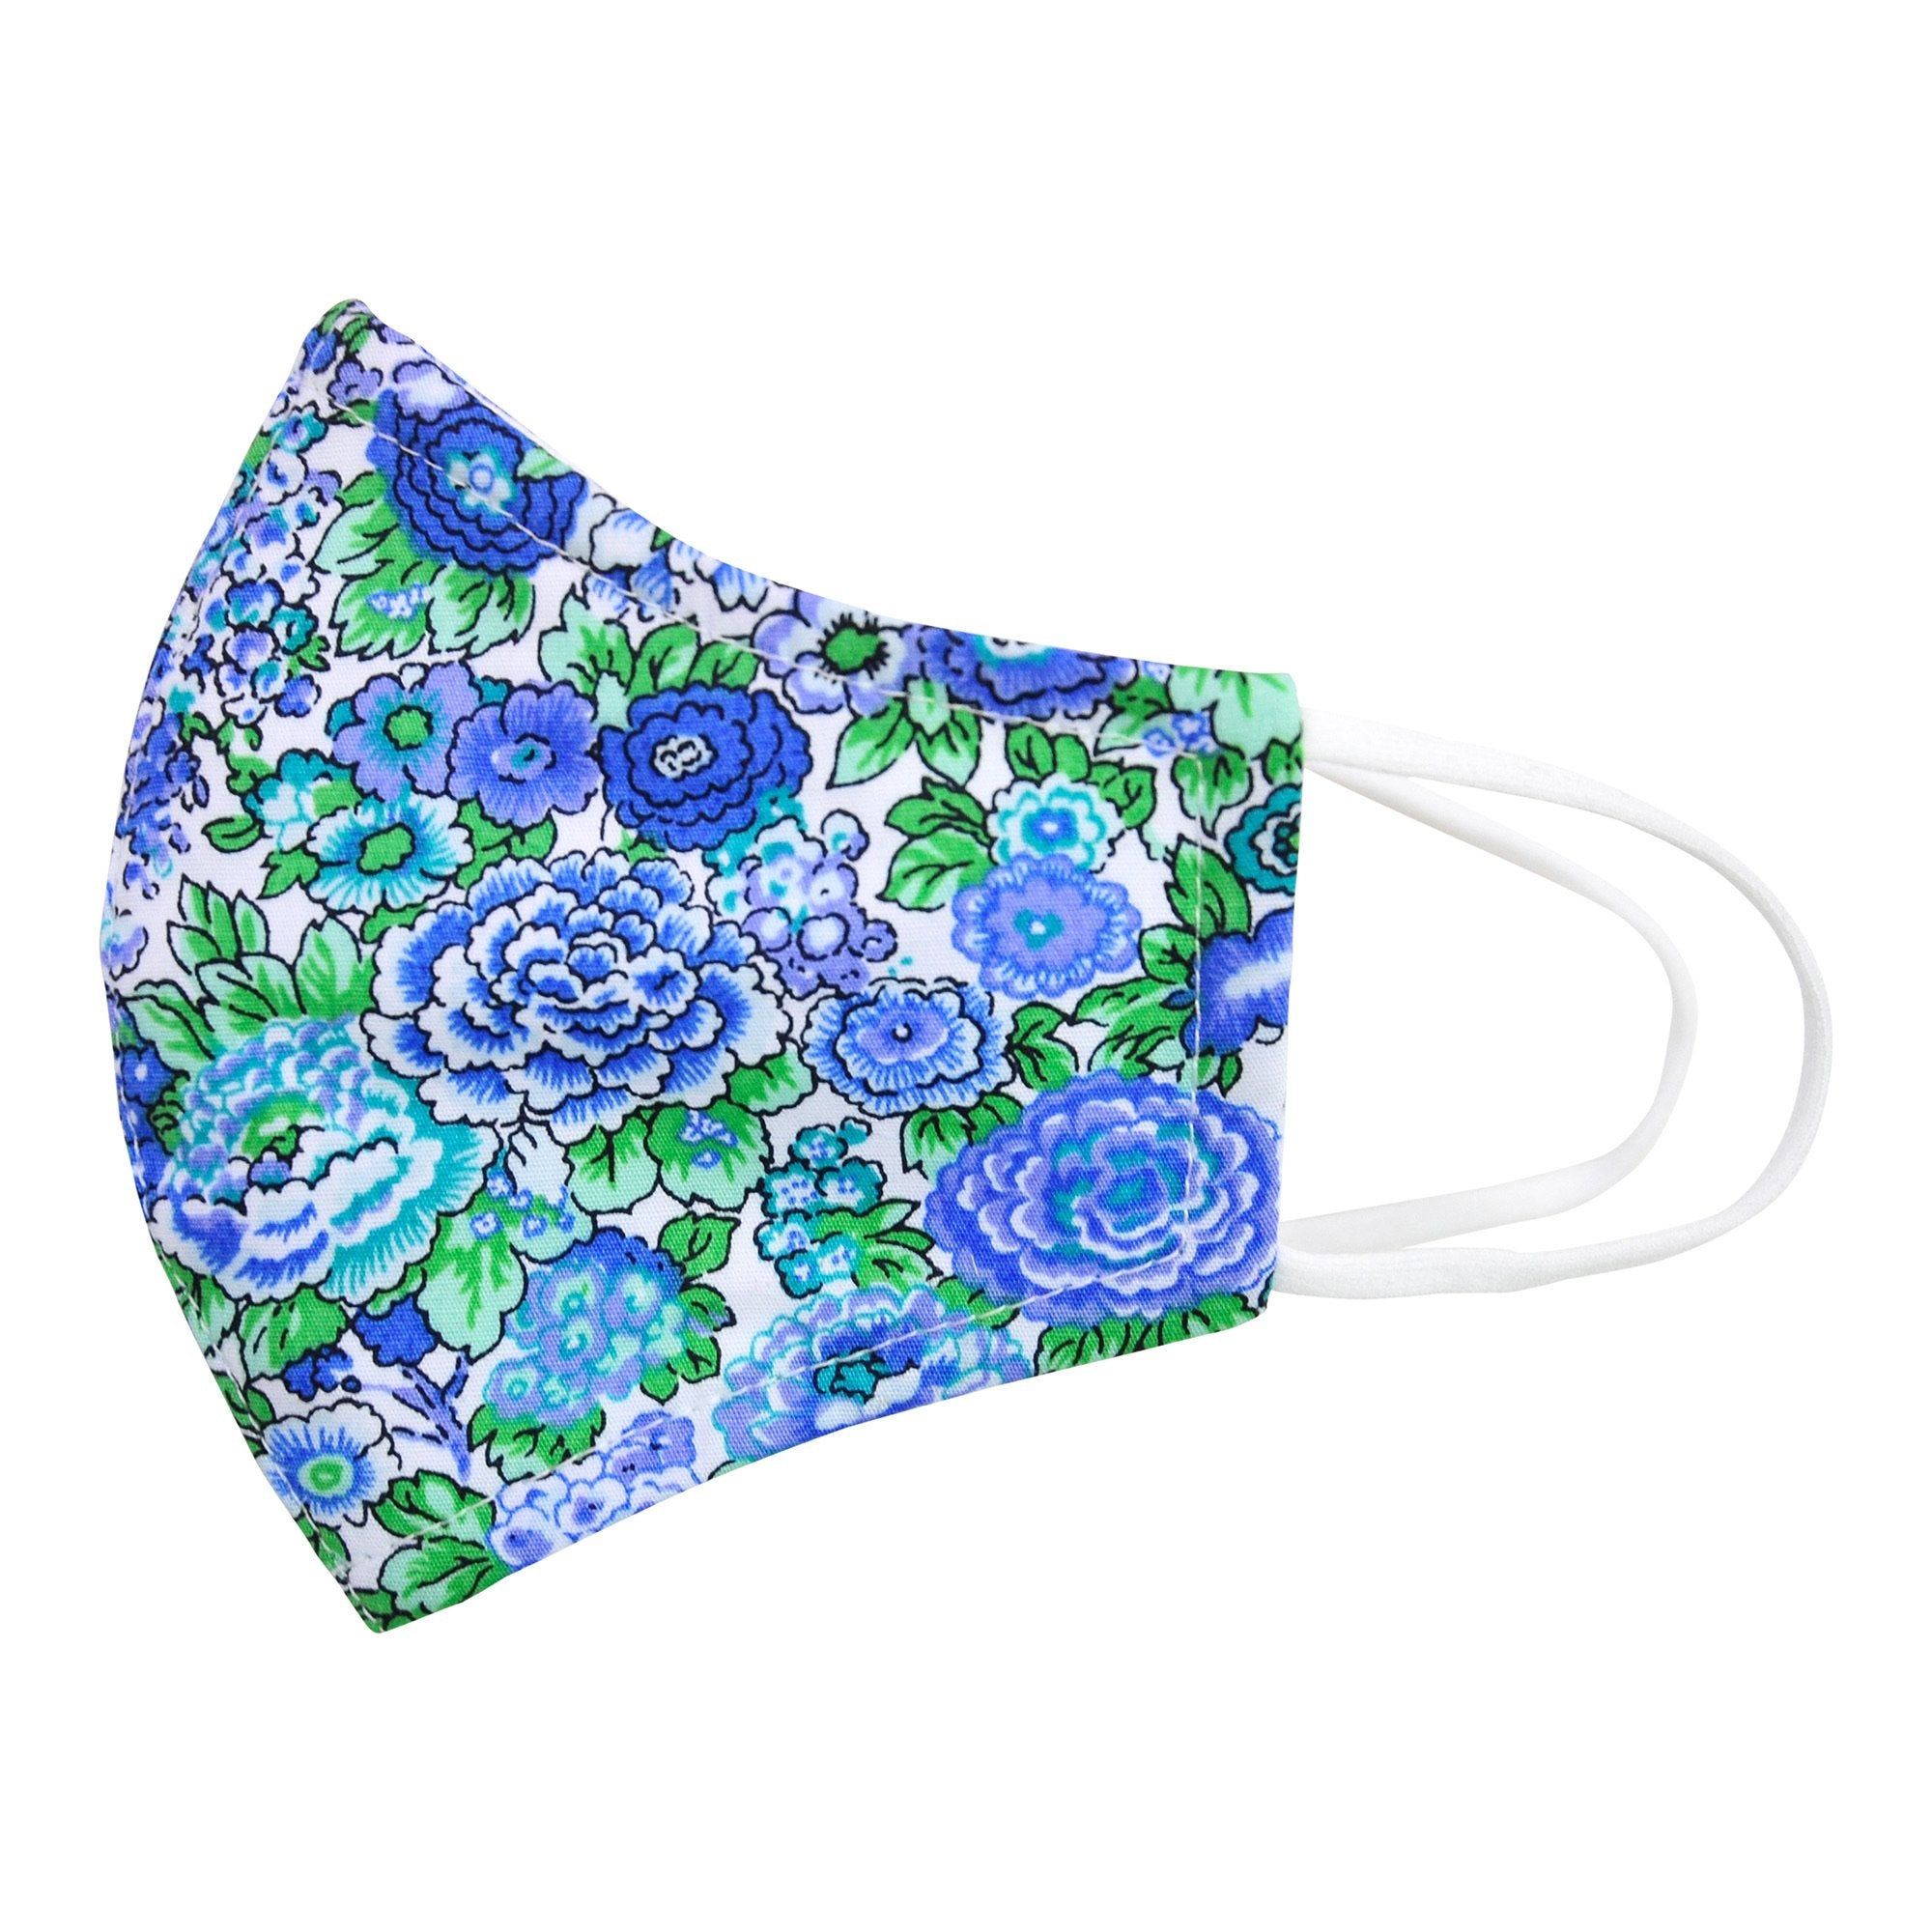 FACE MASK IN BLUE AND GREEN LIBERTY PRINT